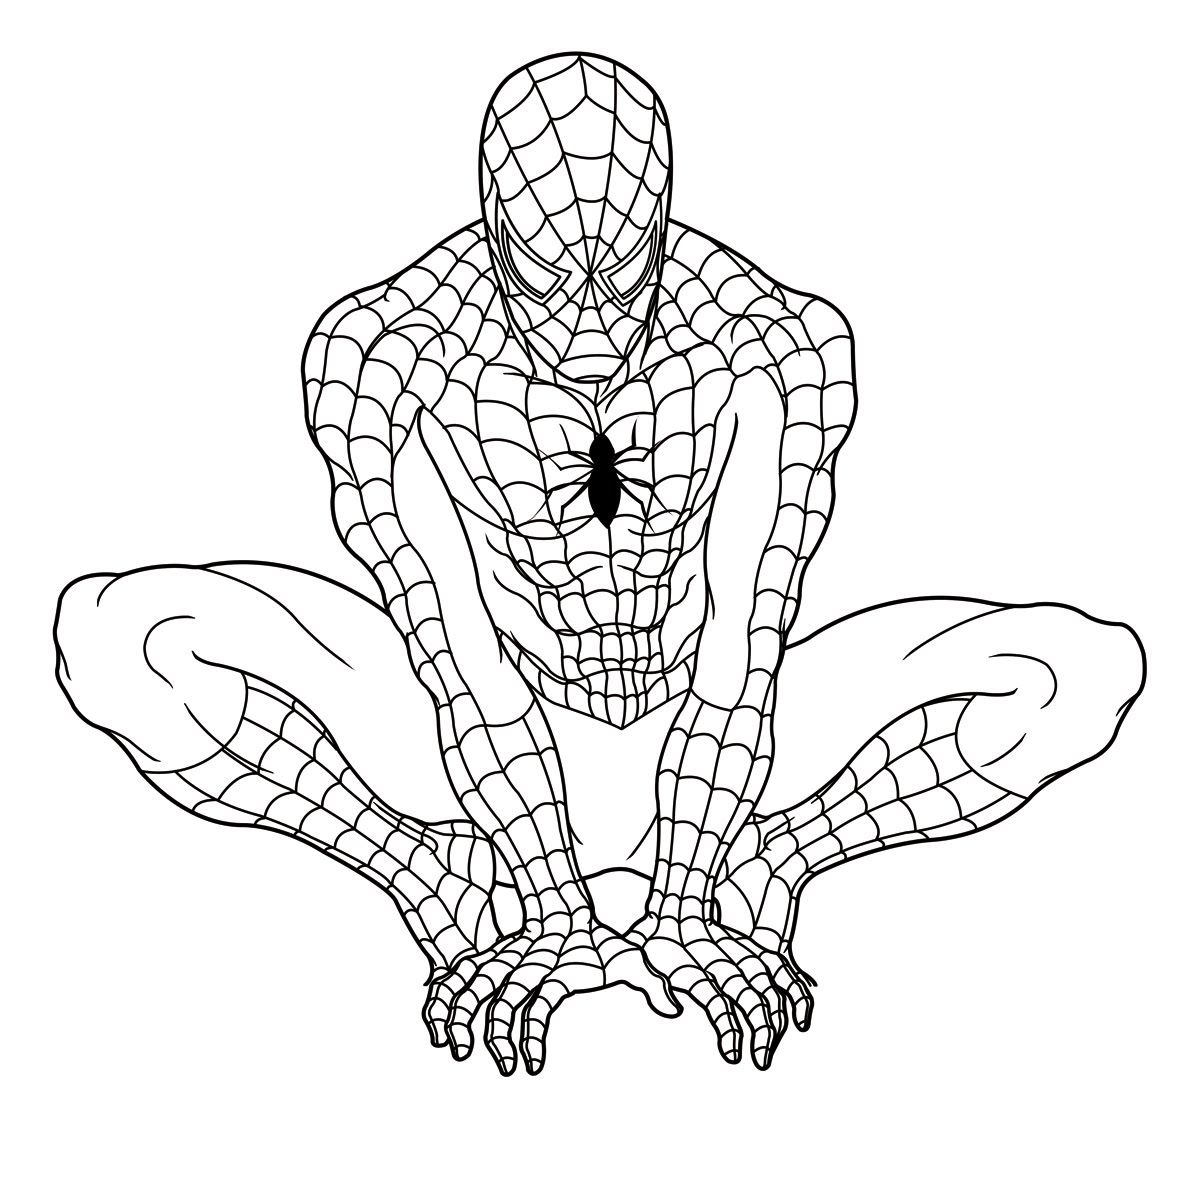 Spiderman 3 Colouring Pages Jpg 1181 1181 Superhero Coloring Pages Spiderman Coloring Superhero Coloring